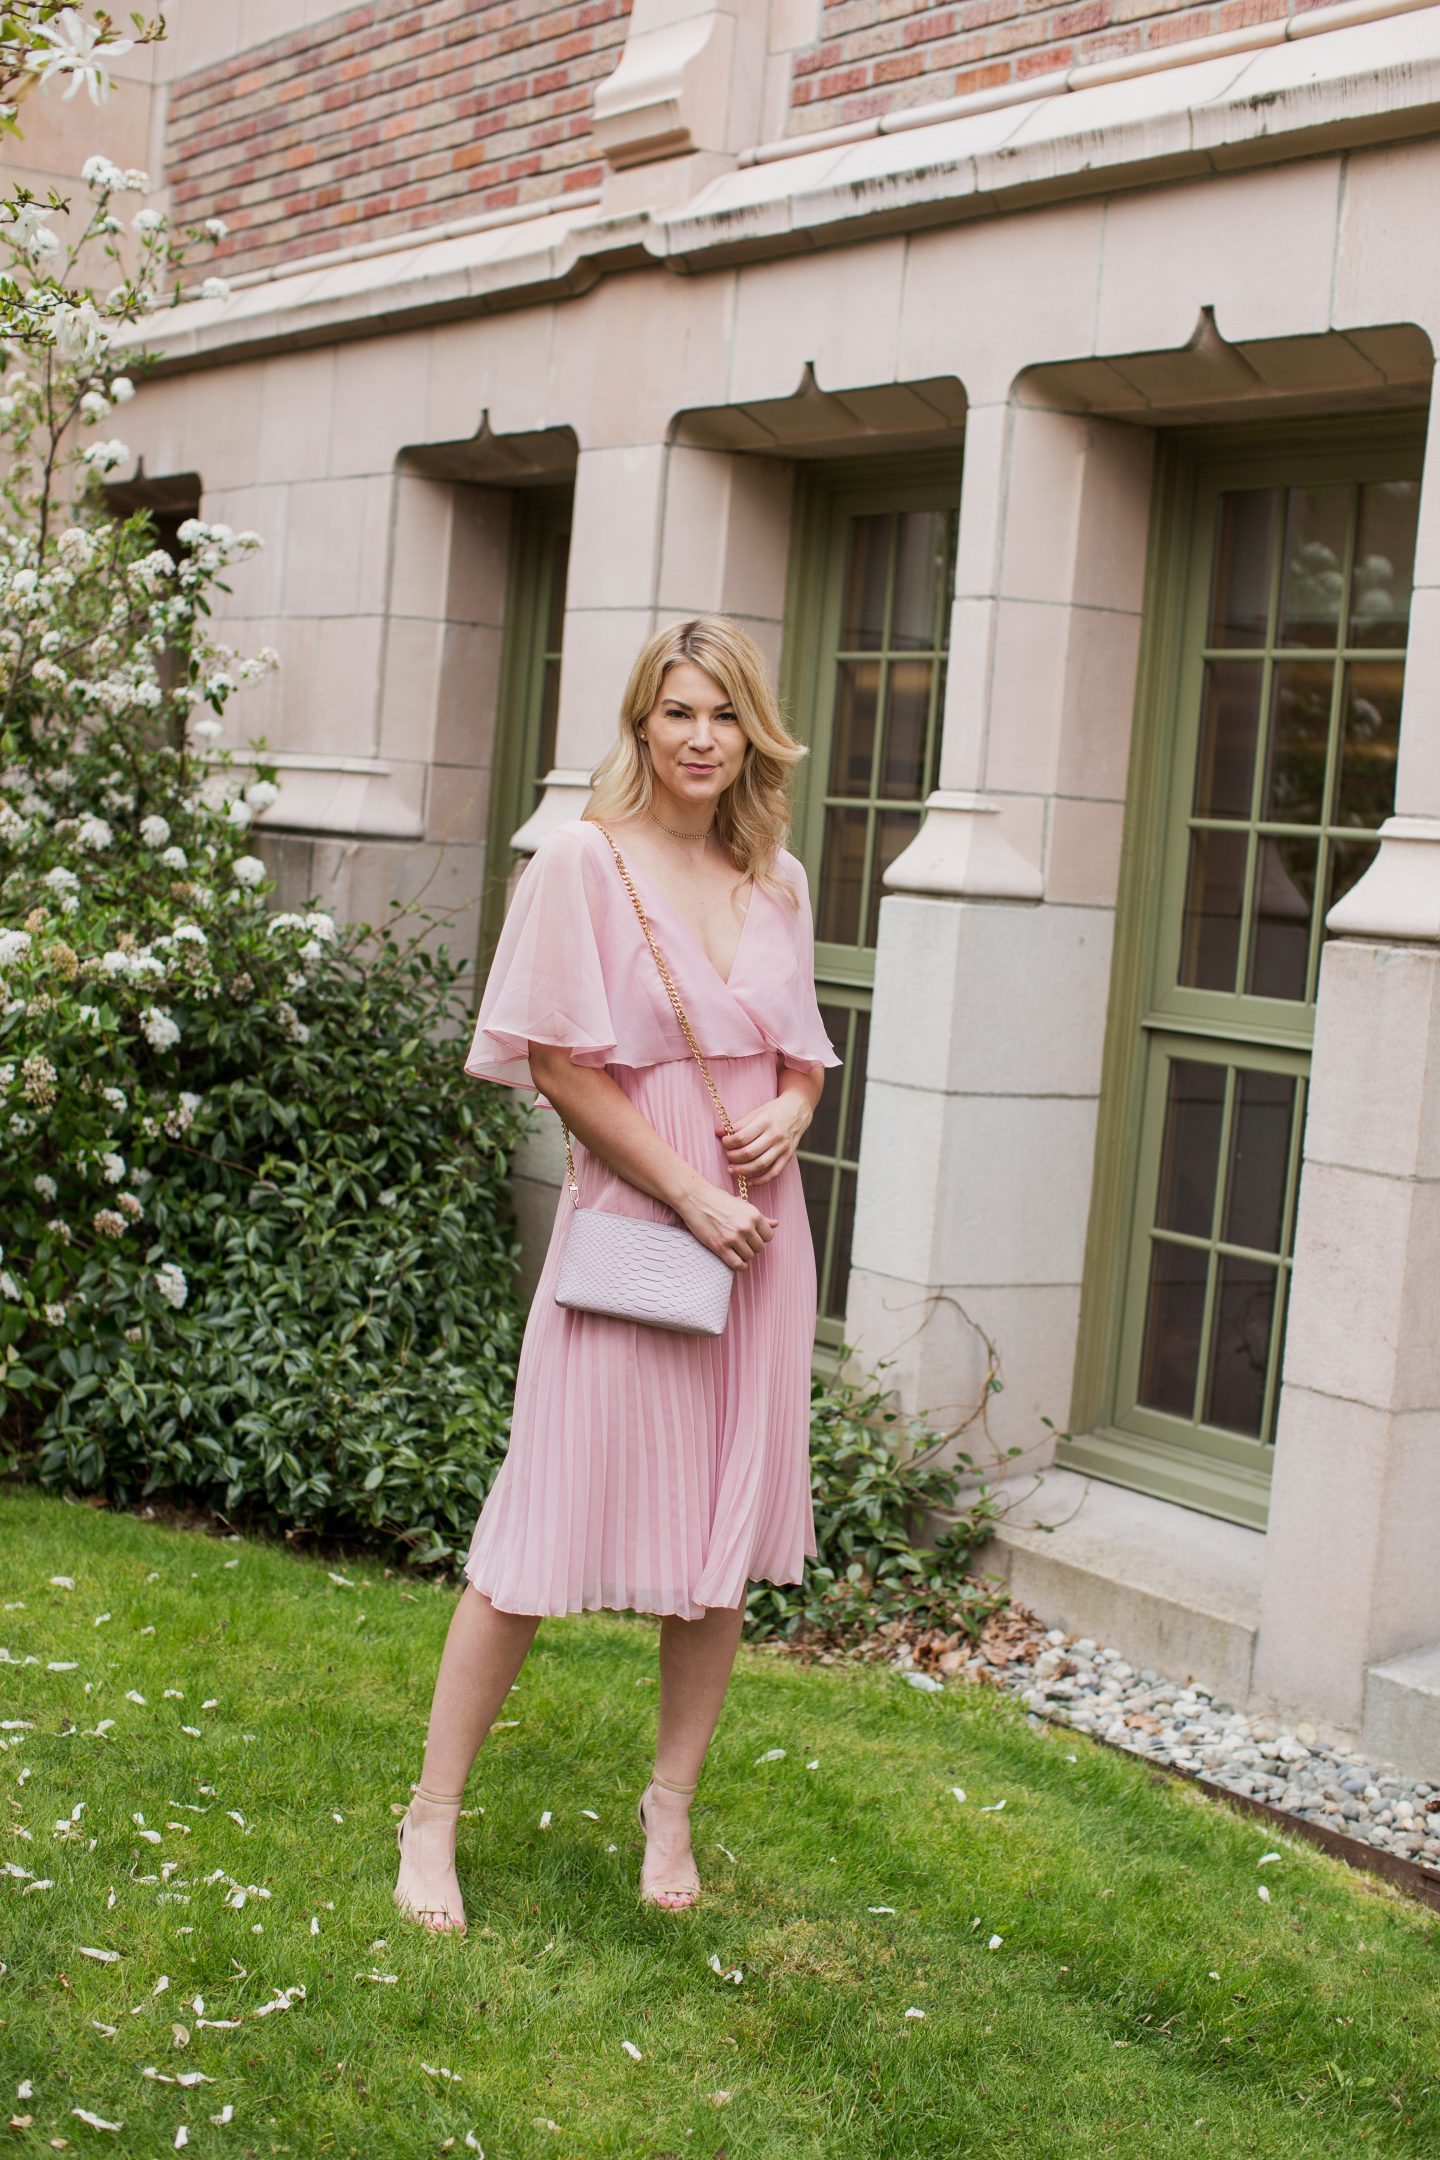 Wedding Appropriate Dresses Under $100: Pretty in Pink